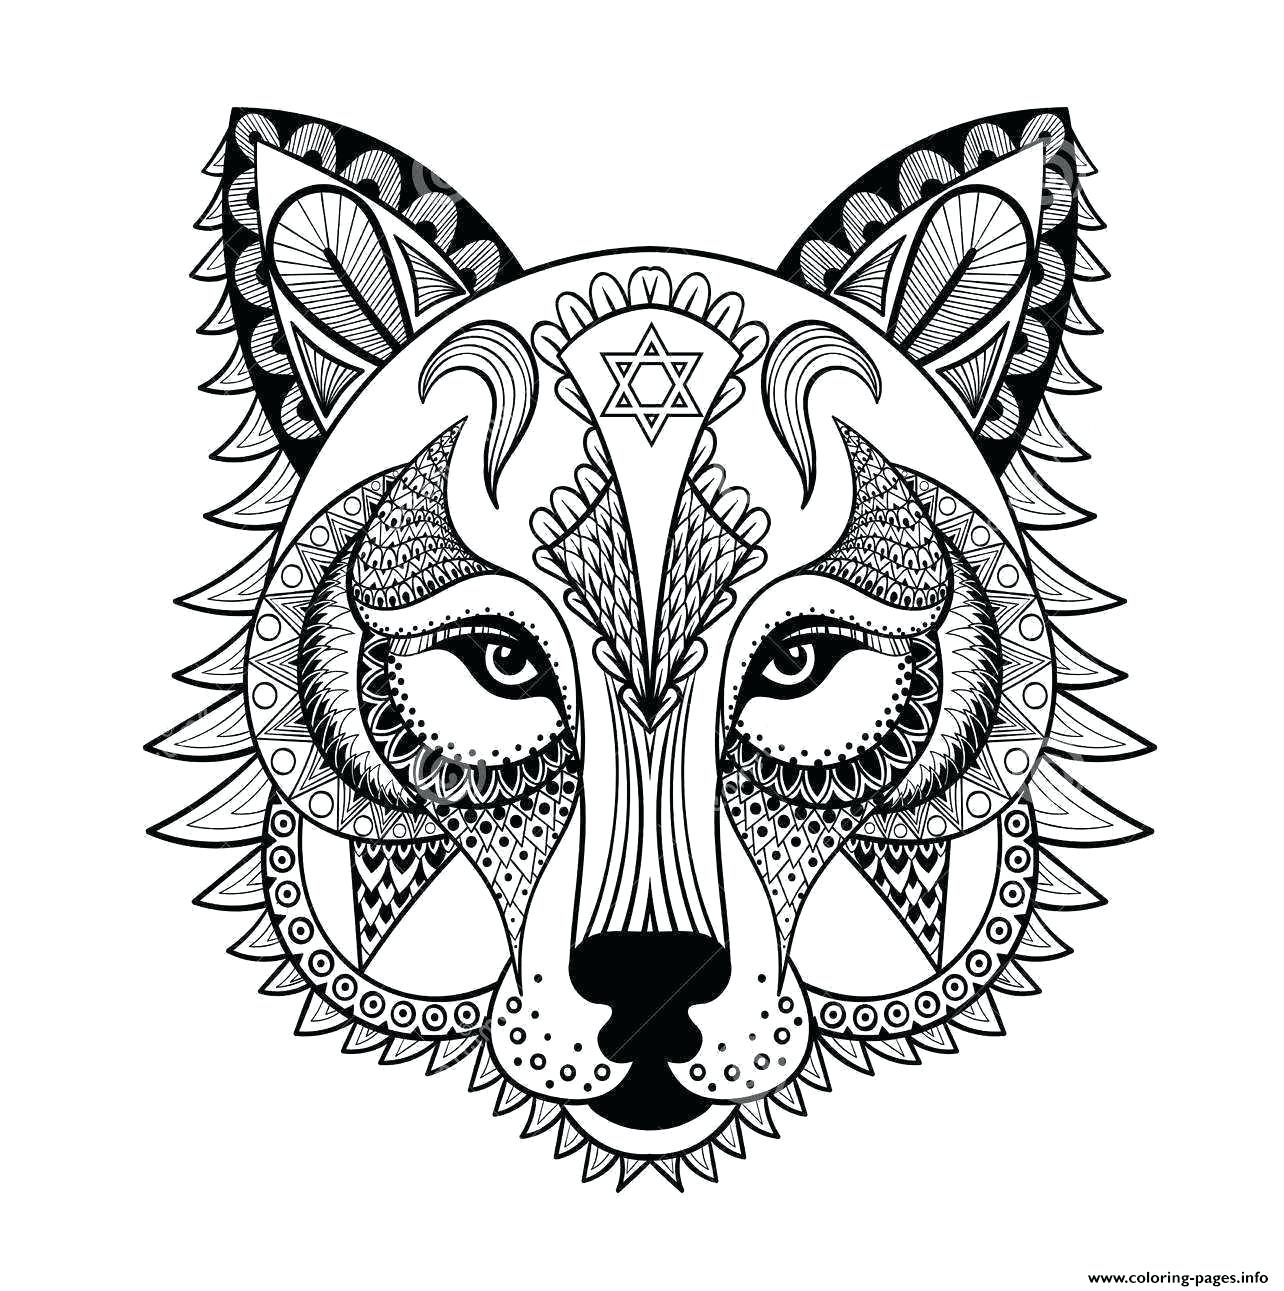 1284x1291 Coloring Wolf Pup Coloring Pages Realistic. Wolf Pup Coloring Pages